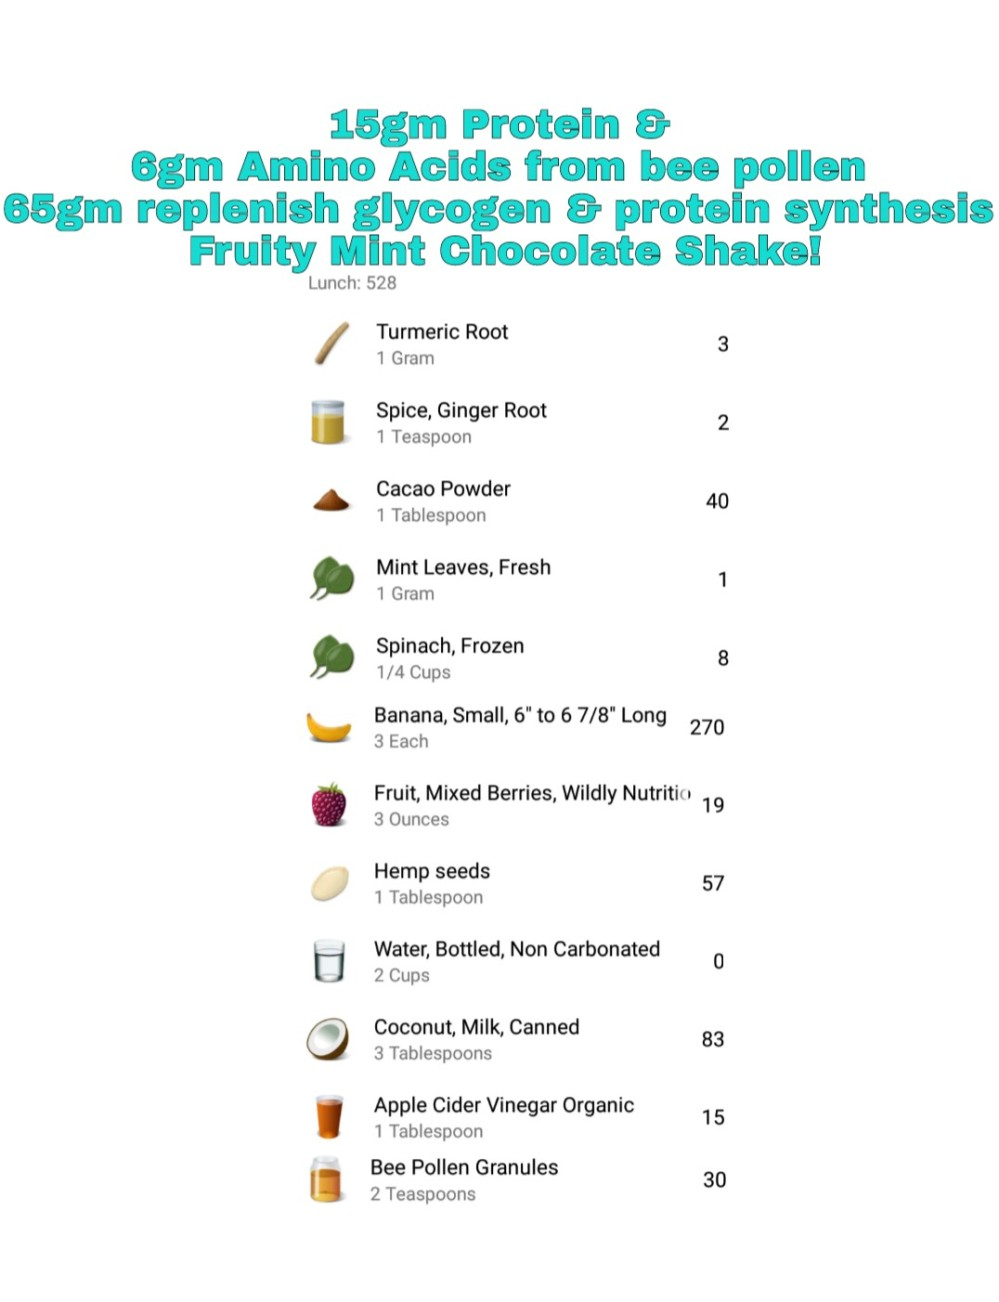 15gm-protein-6gm-amino-acids-from-bee-pollen-65gm-replenish-glycogen-protein-synthesis-fruity-mint-chocolate-shake.jpg.jpg